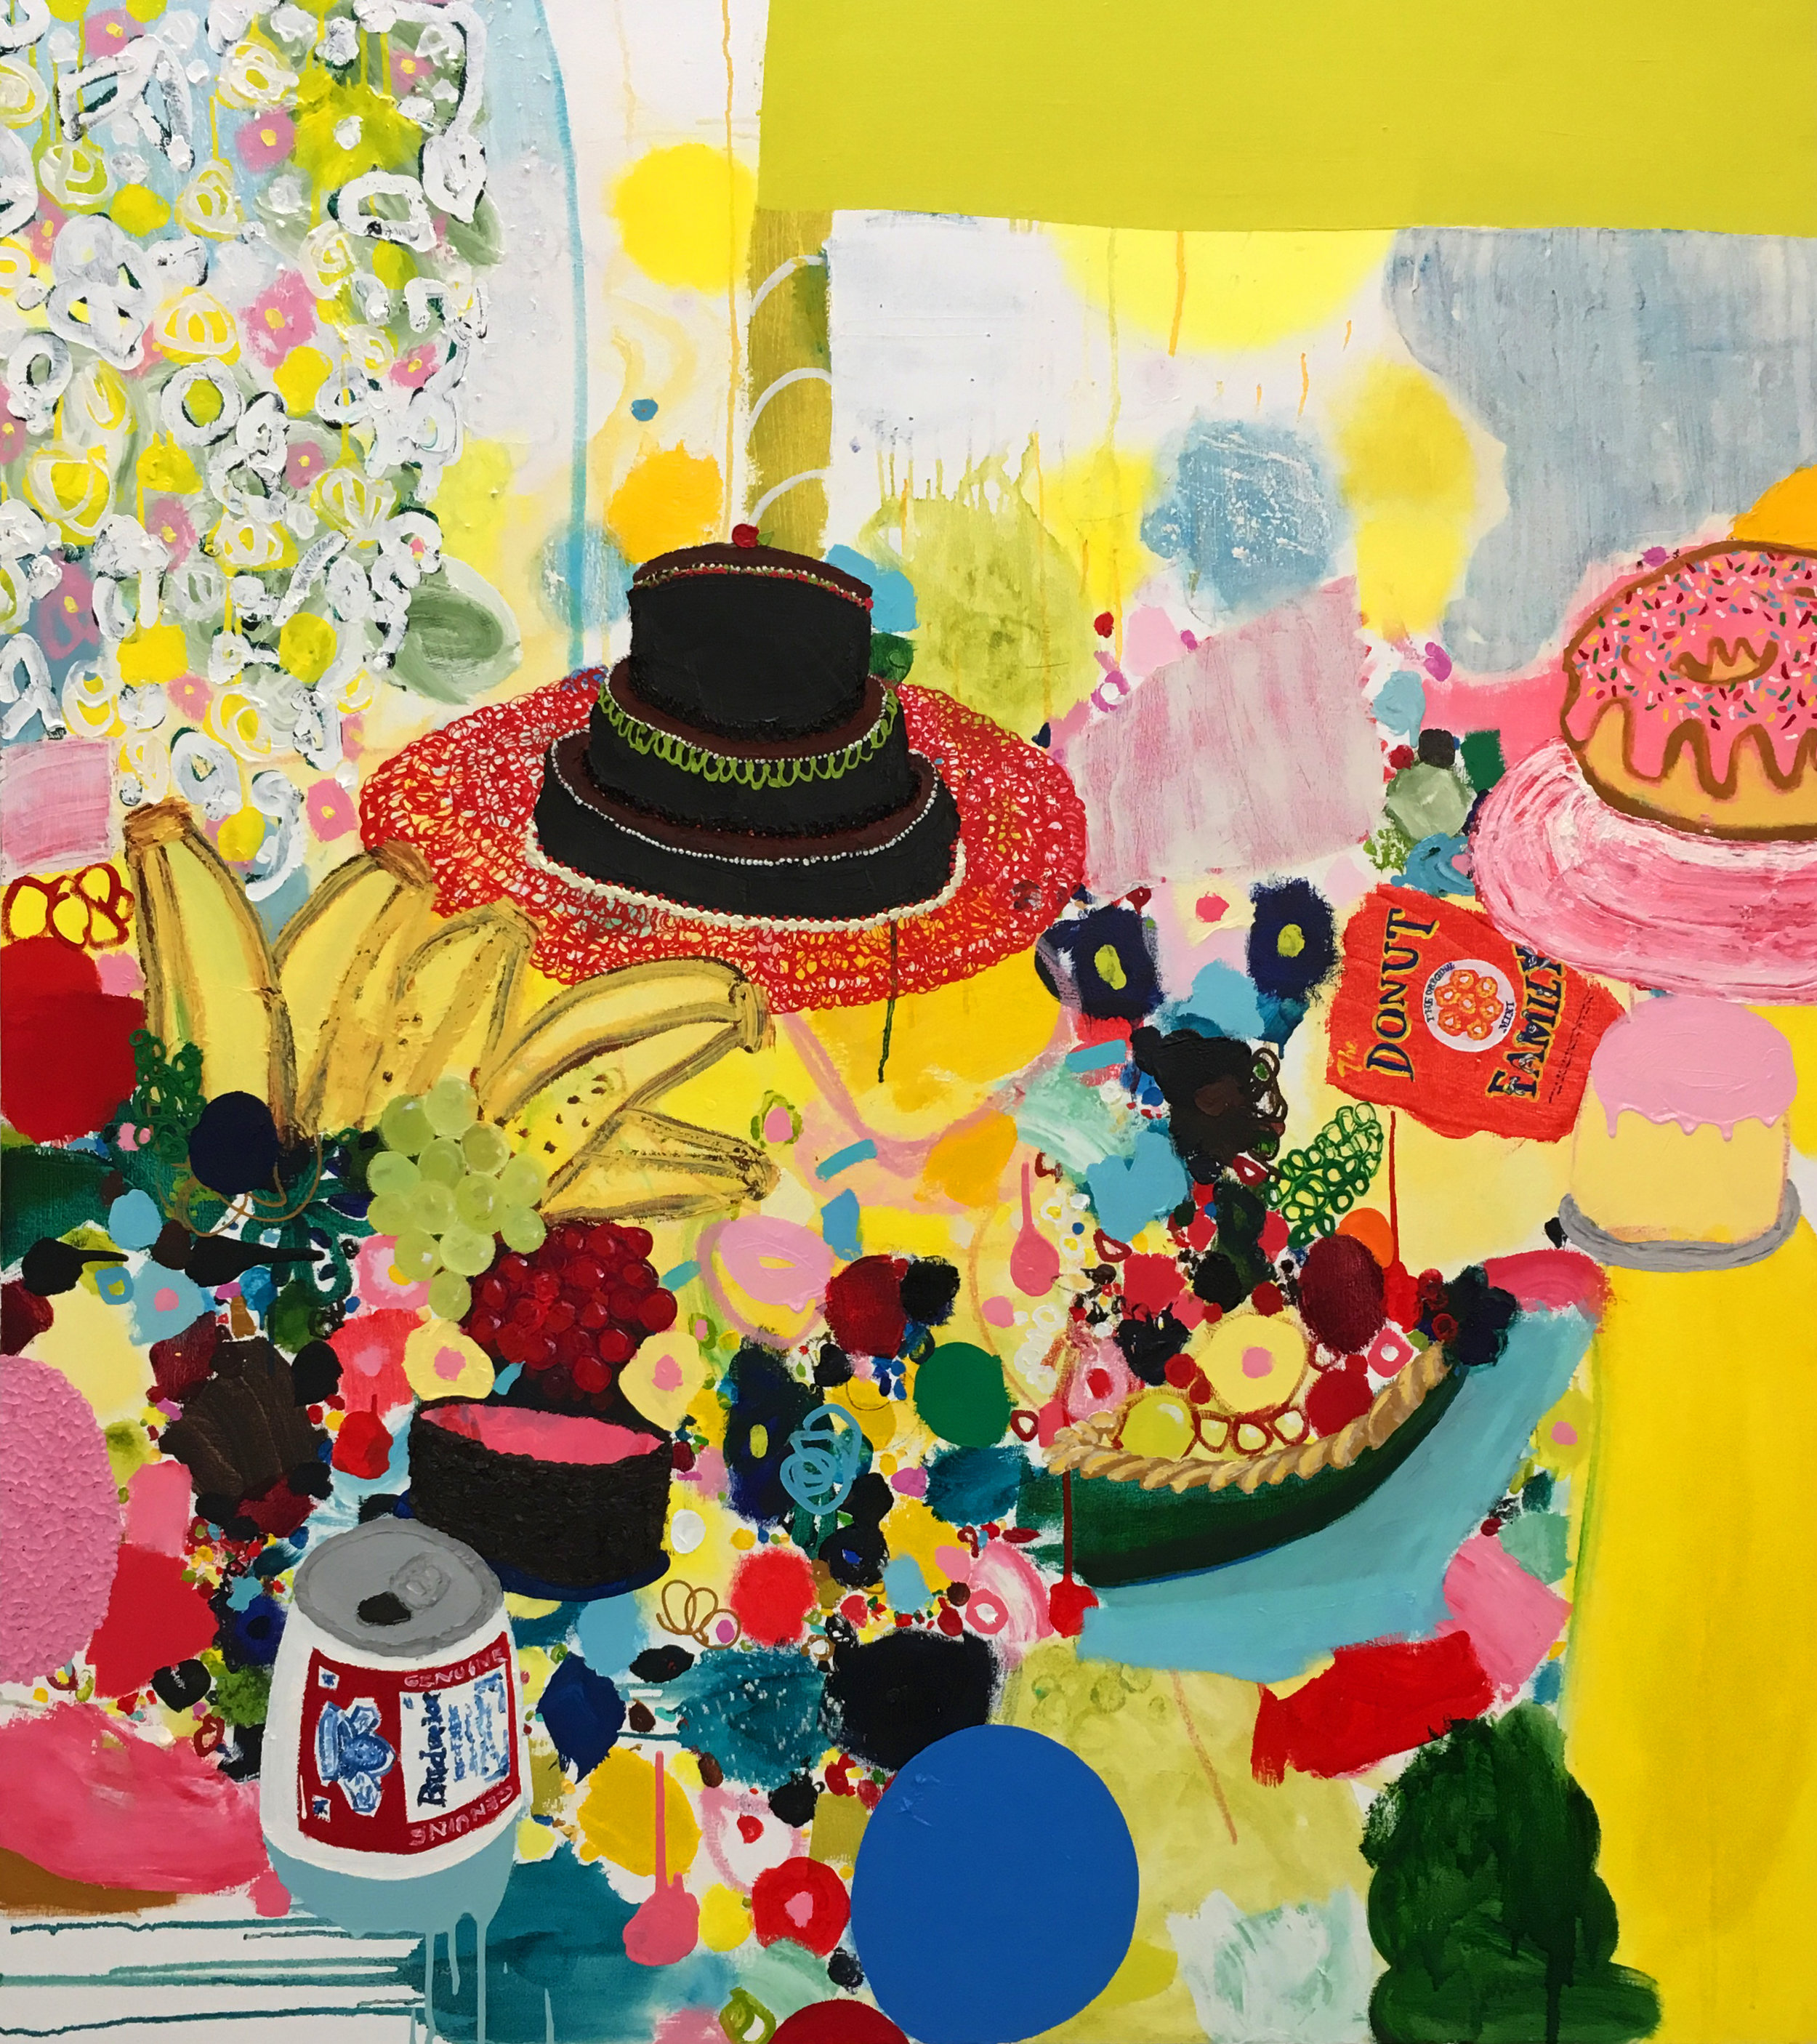 Tracy Miller,  Banana Stand , 2016, Oil on Canvas, 54 x 48 inches